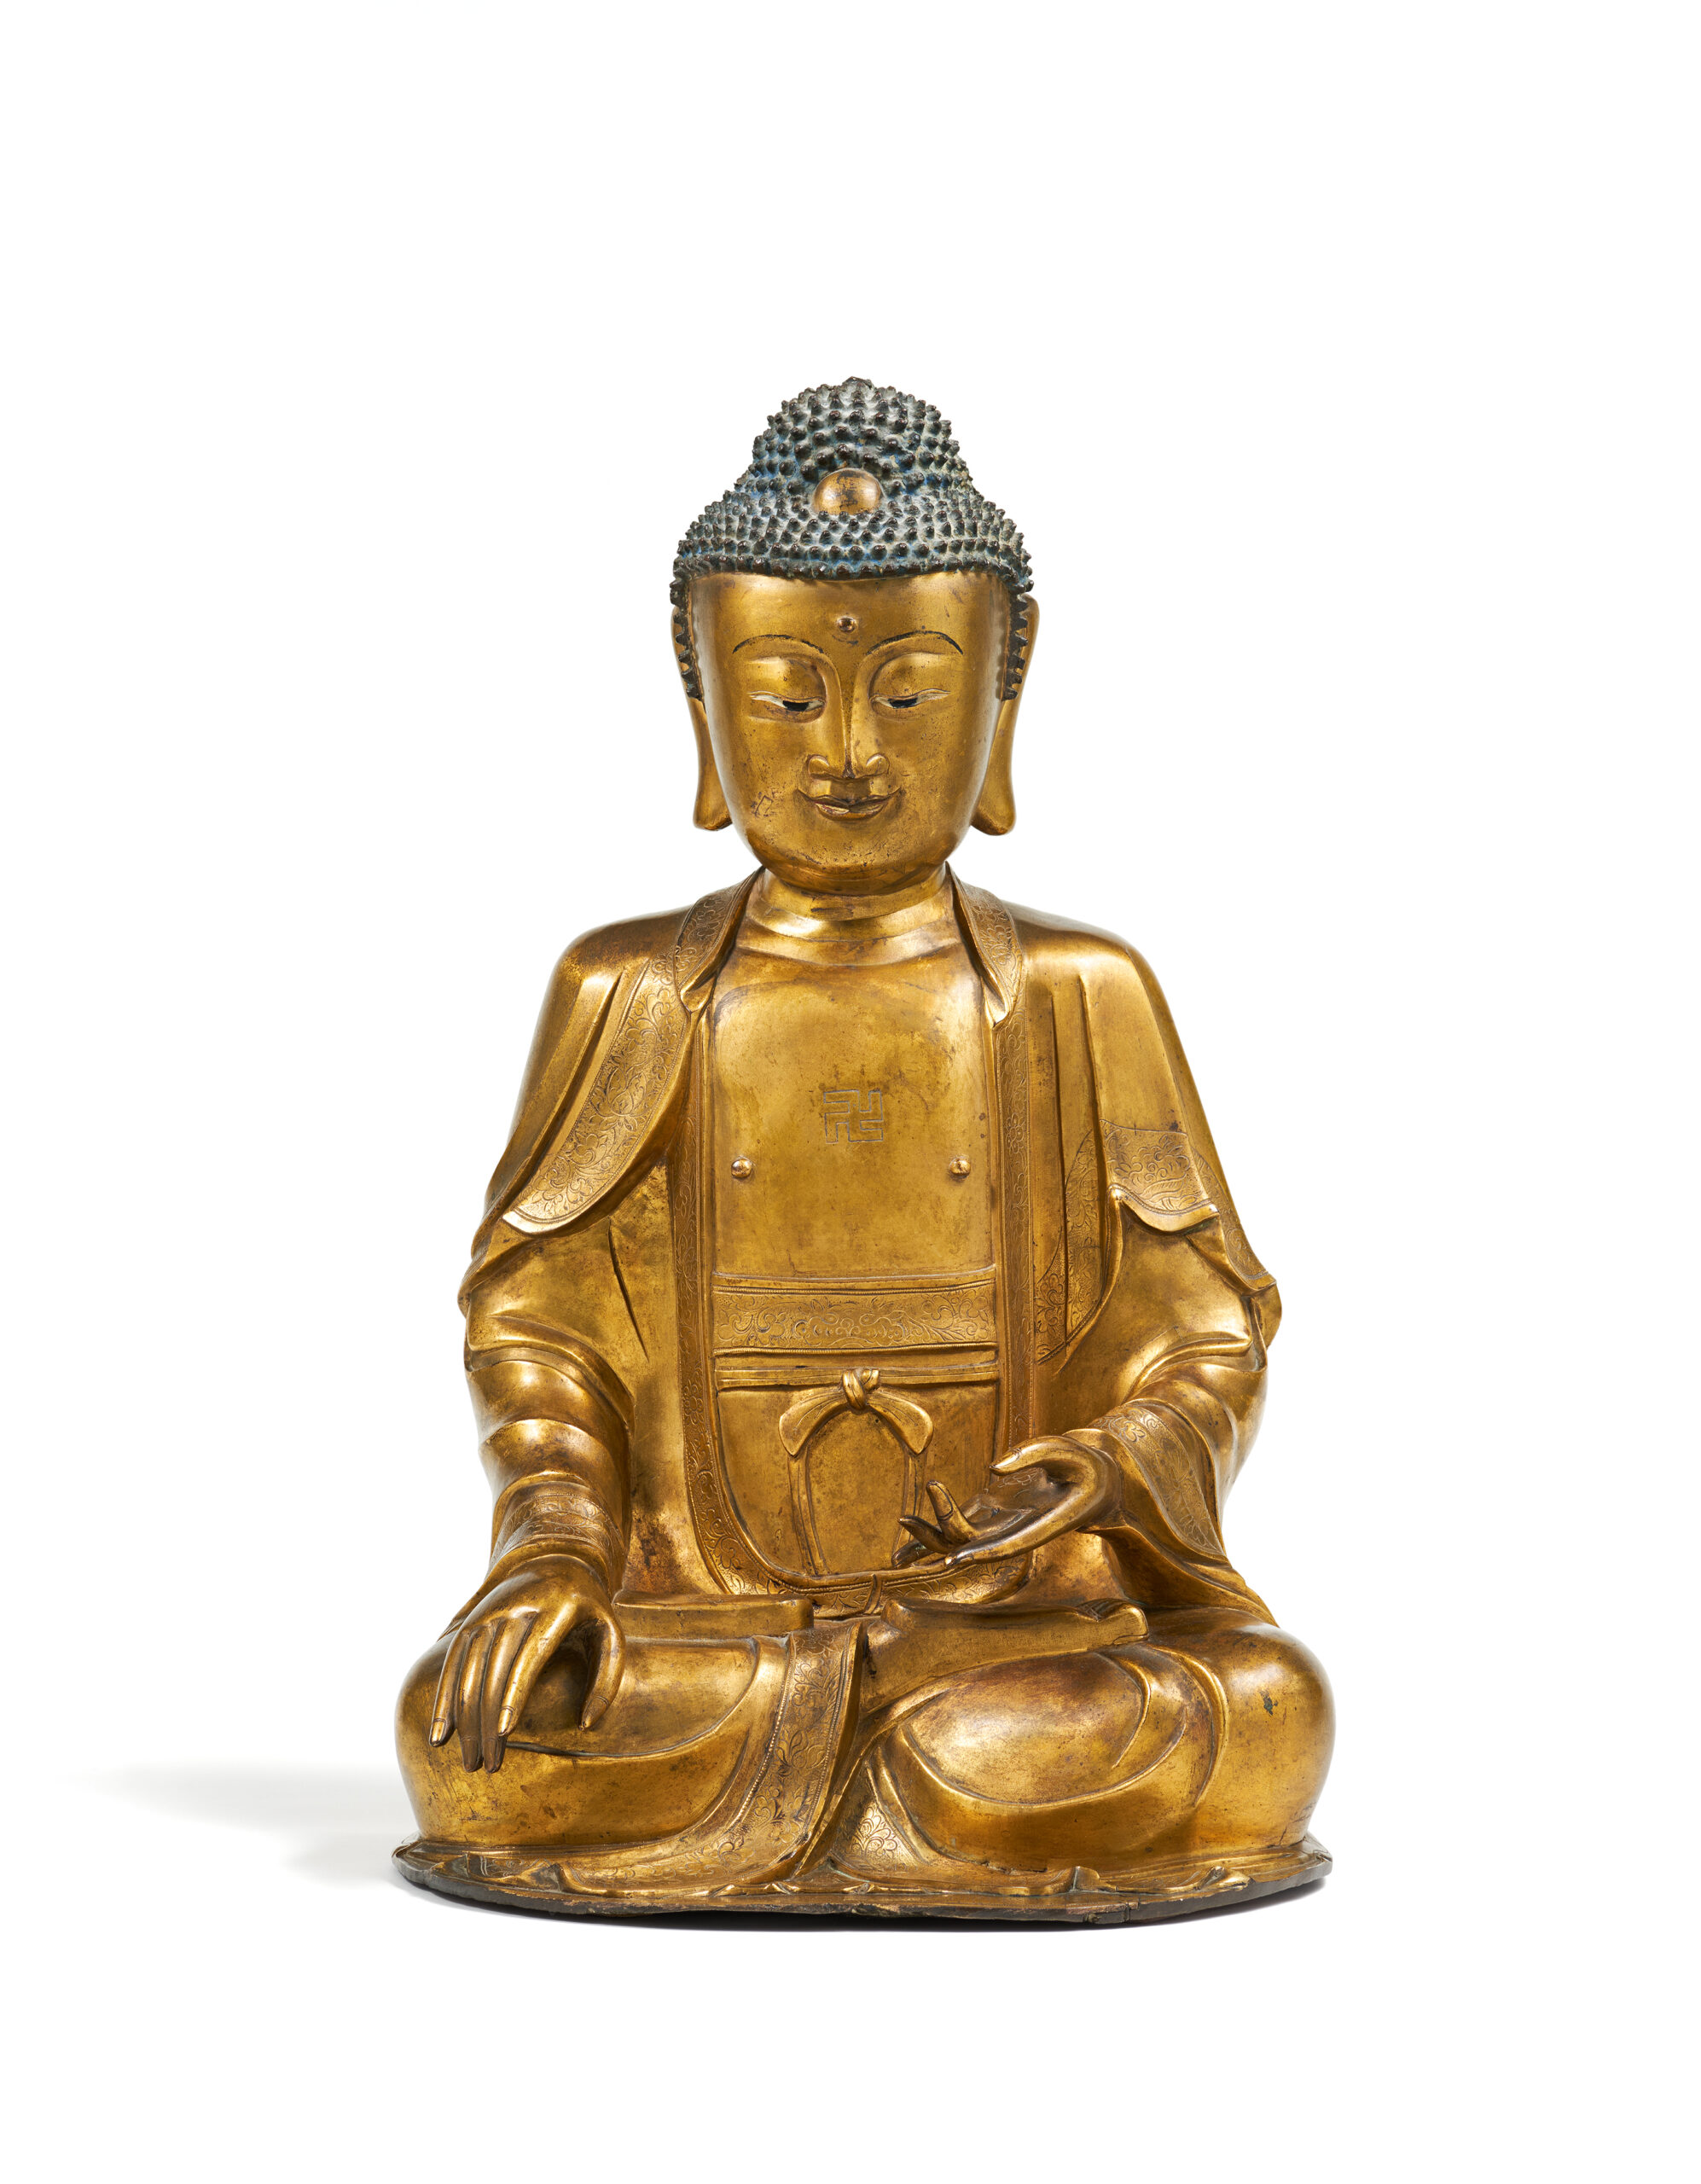 A LARGE GILT-BRONZE FIGURE OF SHAKYAMUNI 17th/18th century